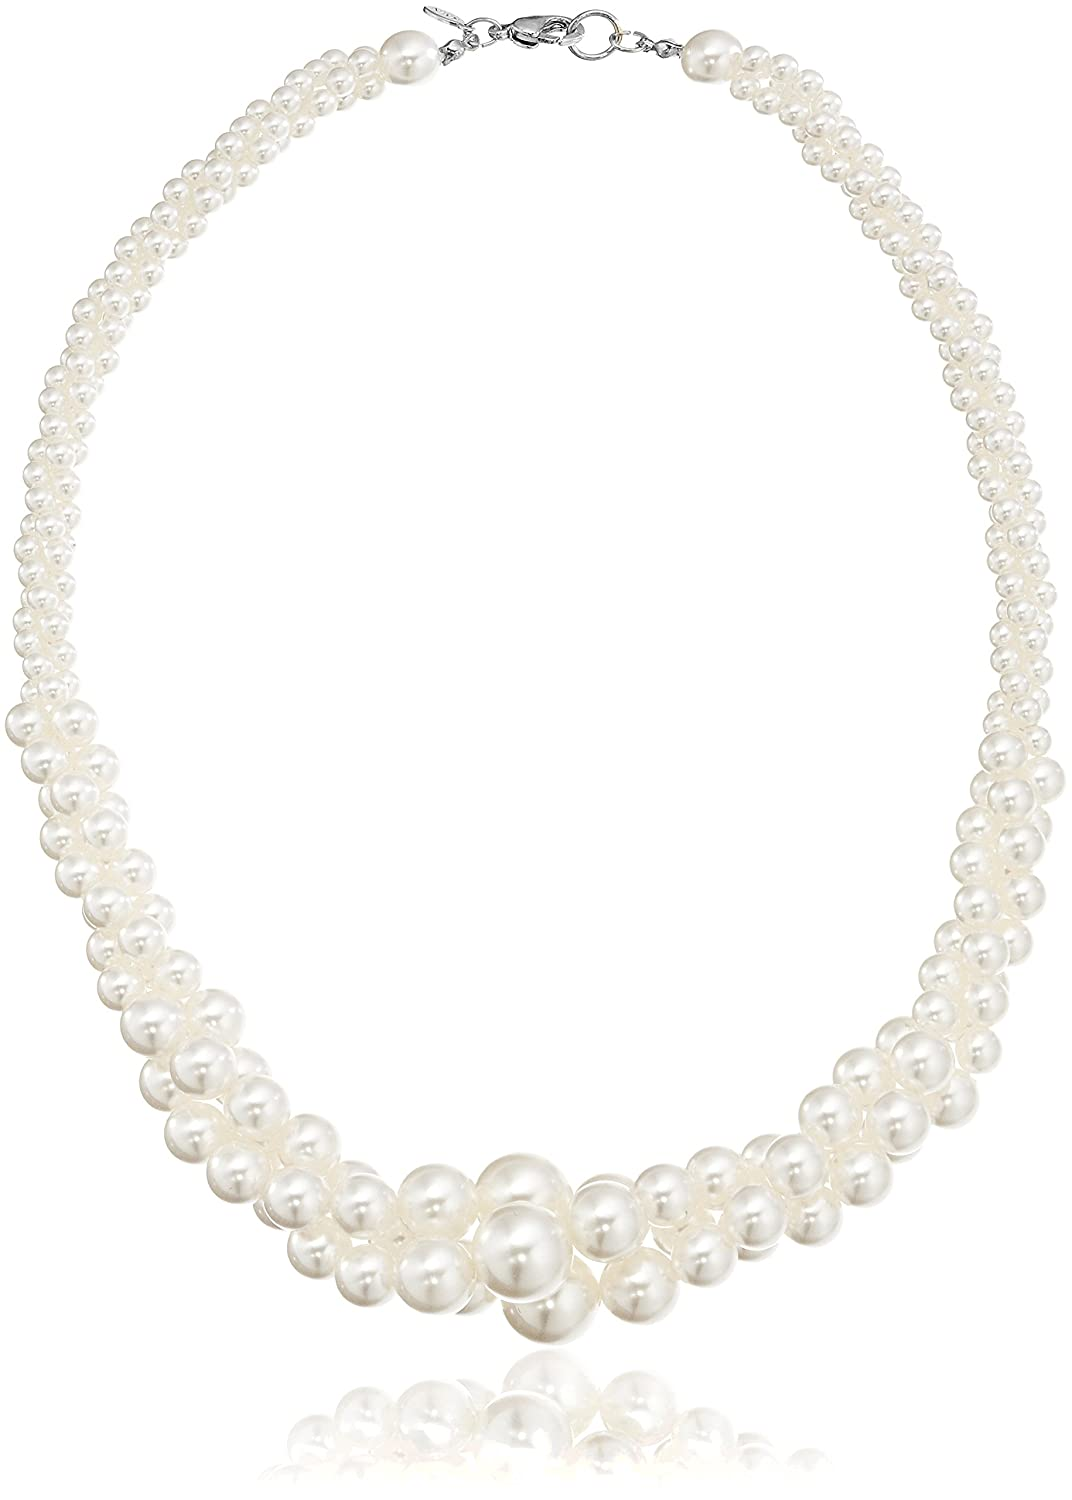 Colored Simulated Three Strand Twisted Pearl Necklace, 18 18 + 2 Amazon Collection 20040717